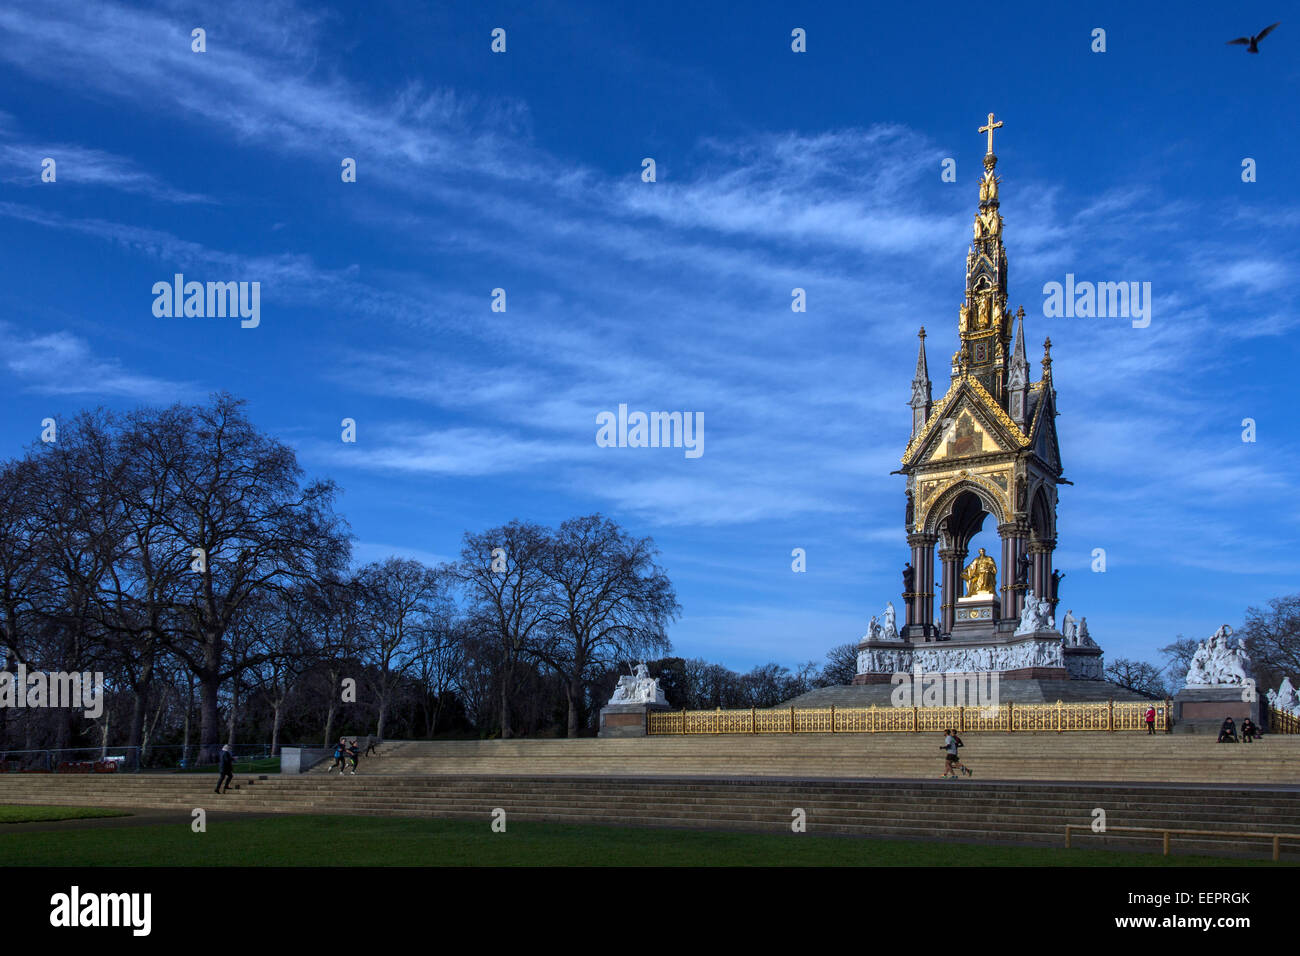 The Albert Memorial is situated in Kensington Gardens, London, England - Stock Image